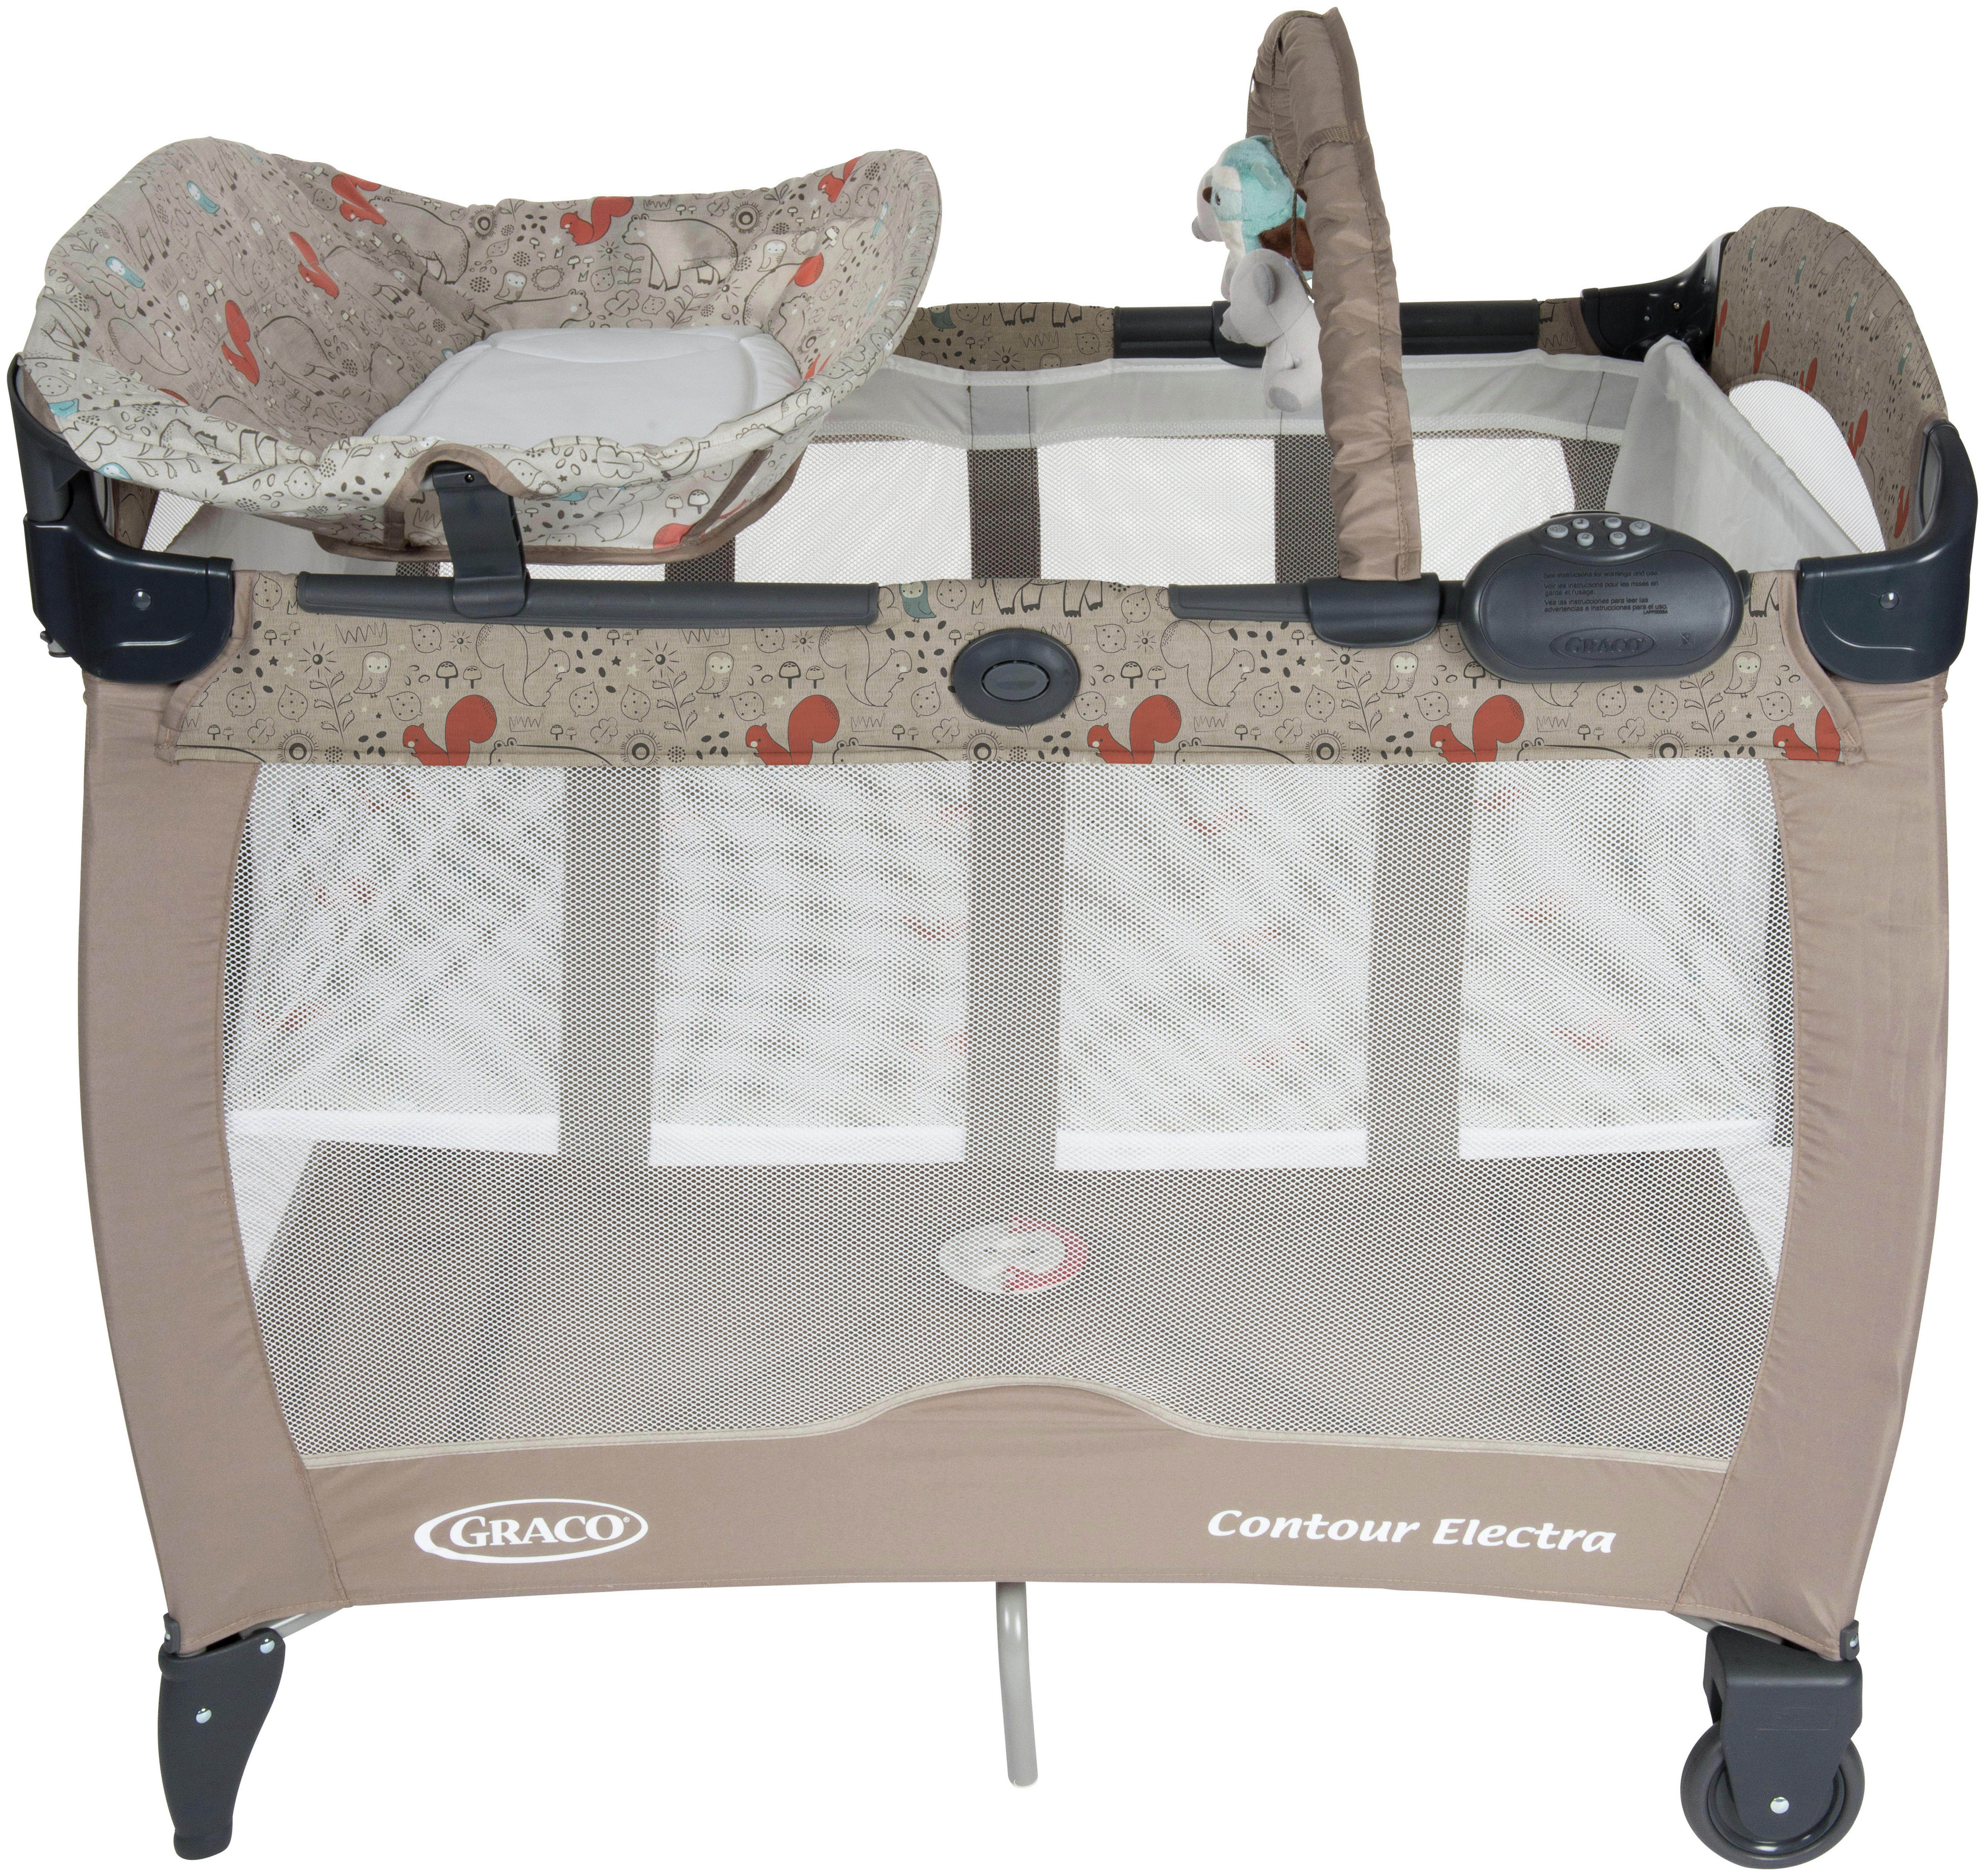 Image of Graco Contour Electra Playard.